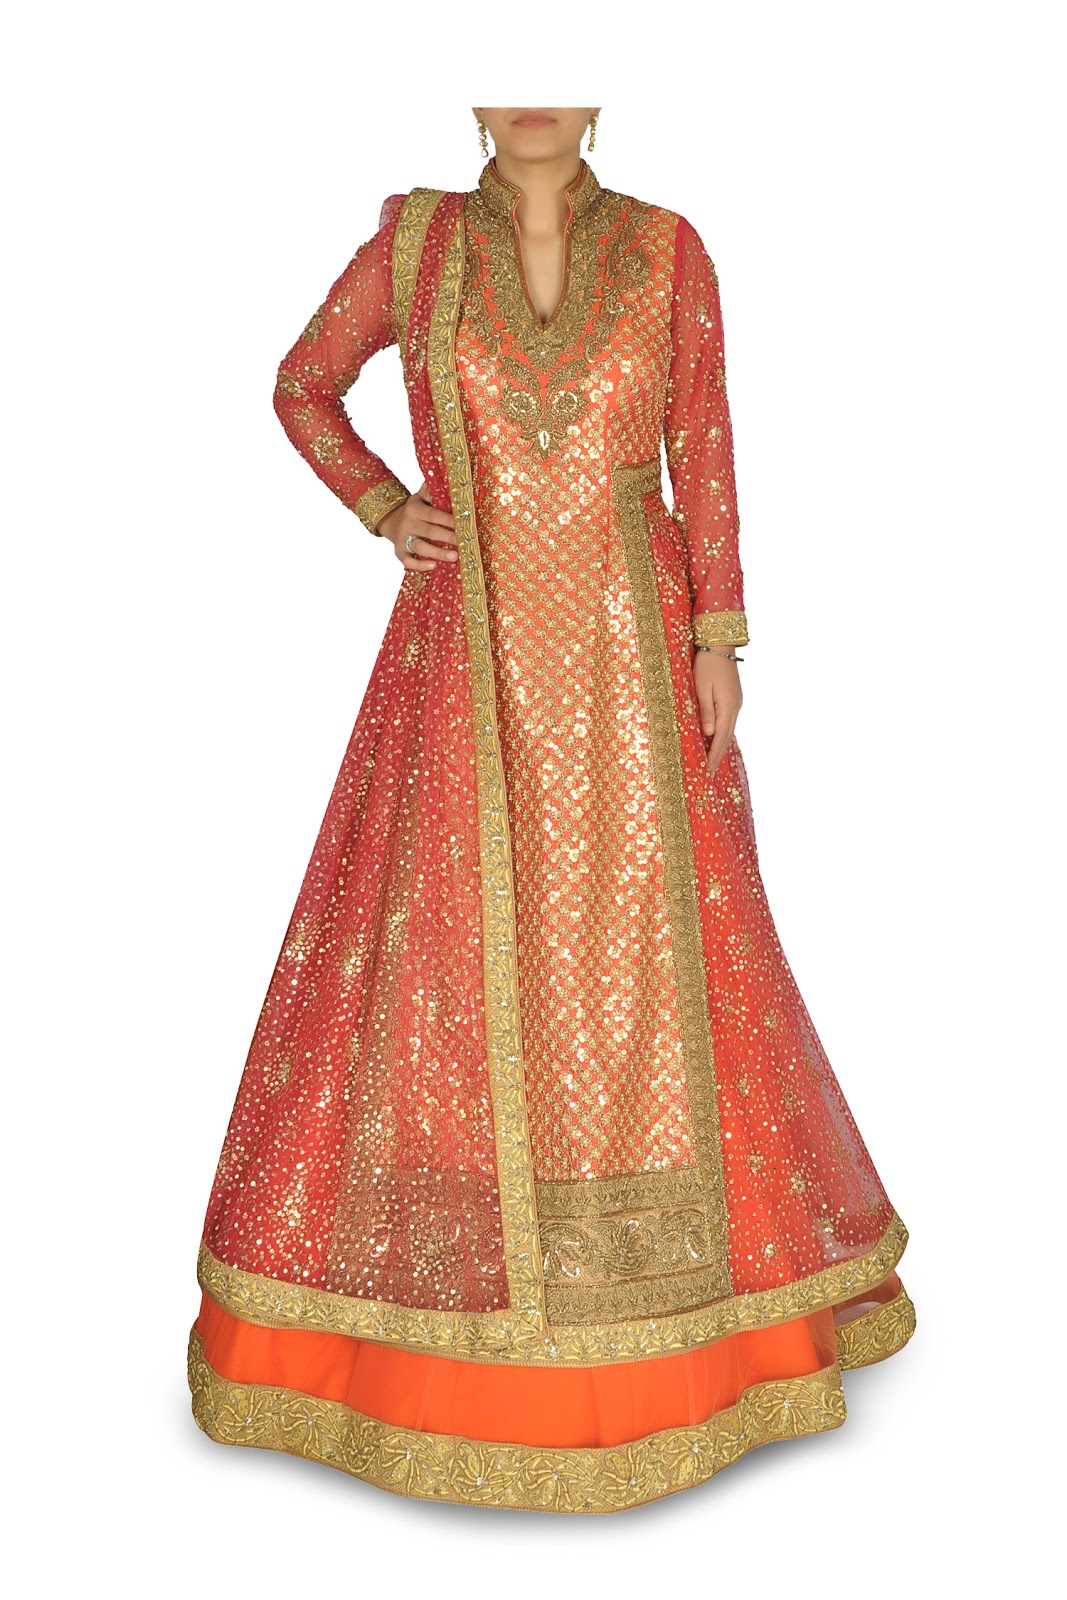 Elegant Indian Clothing Wedding Outfits